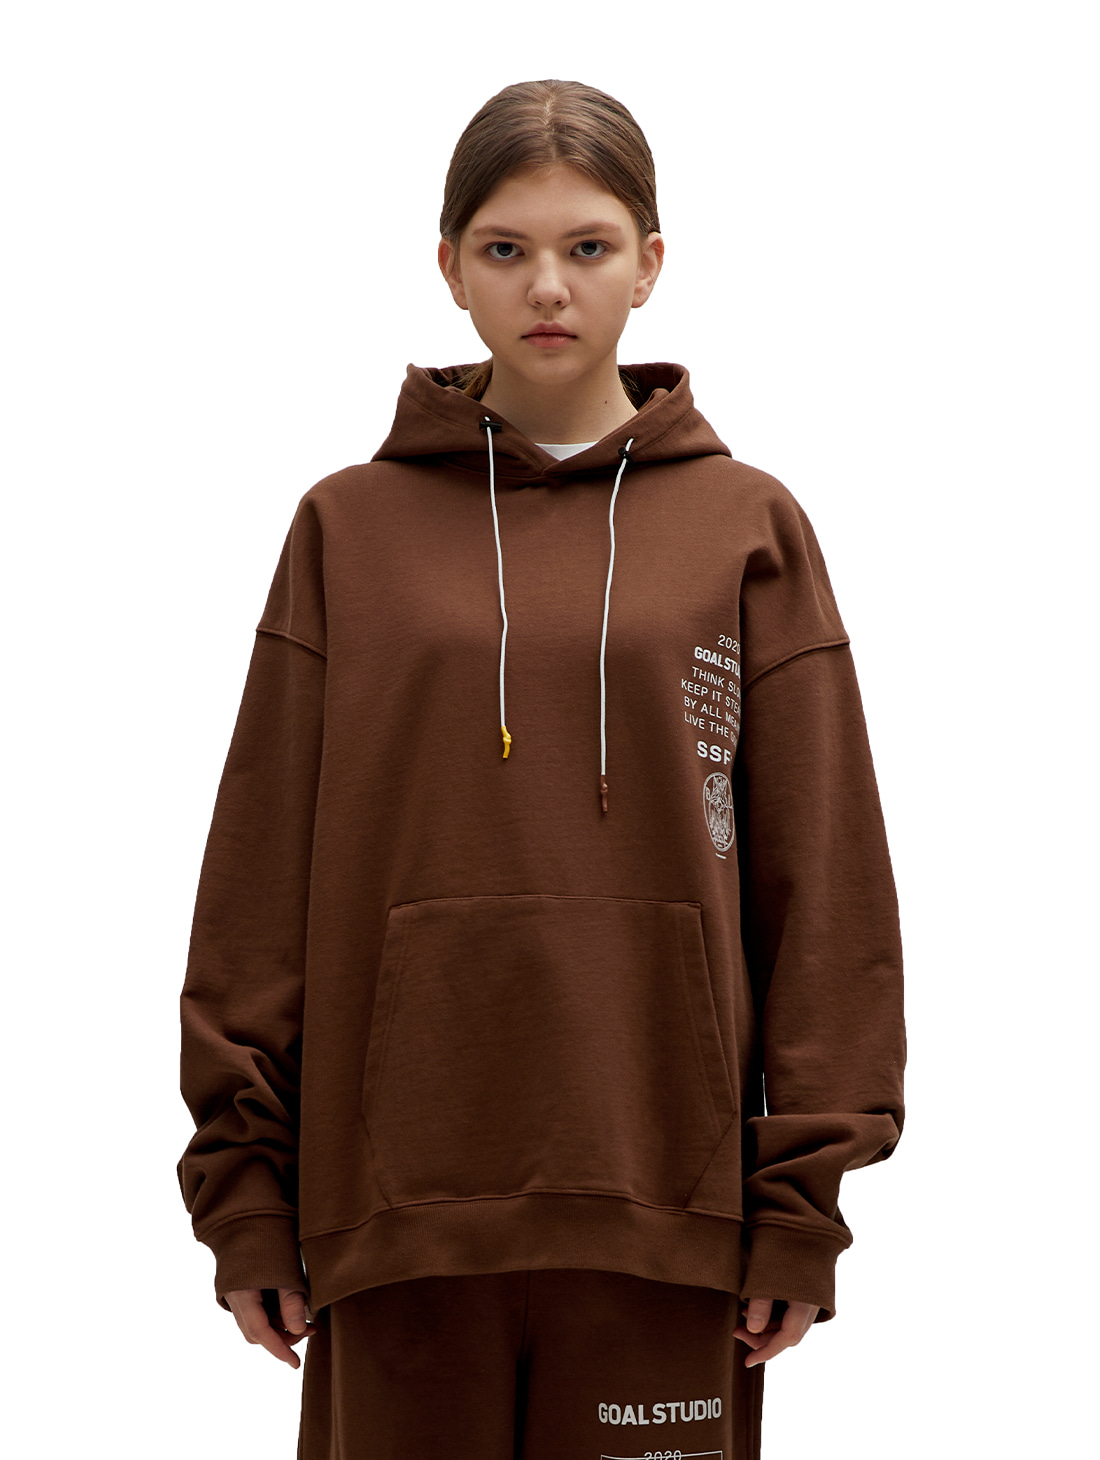 GOALSTUDIO SSFC JERSEY HOODED SWEATSHIRT - BROWN